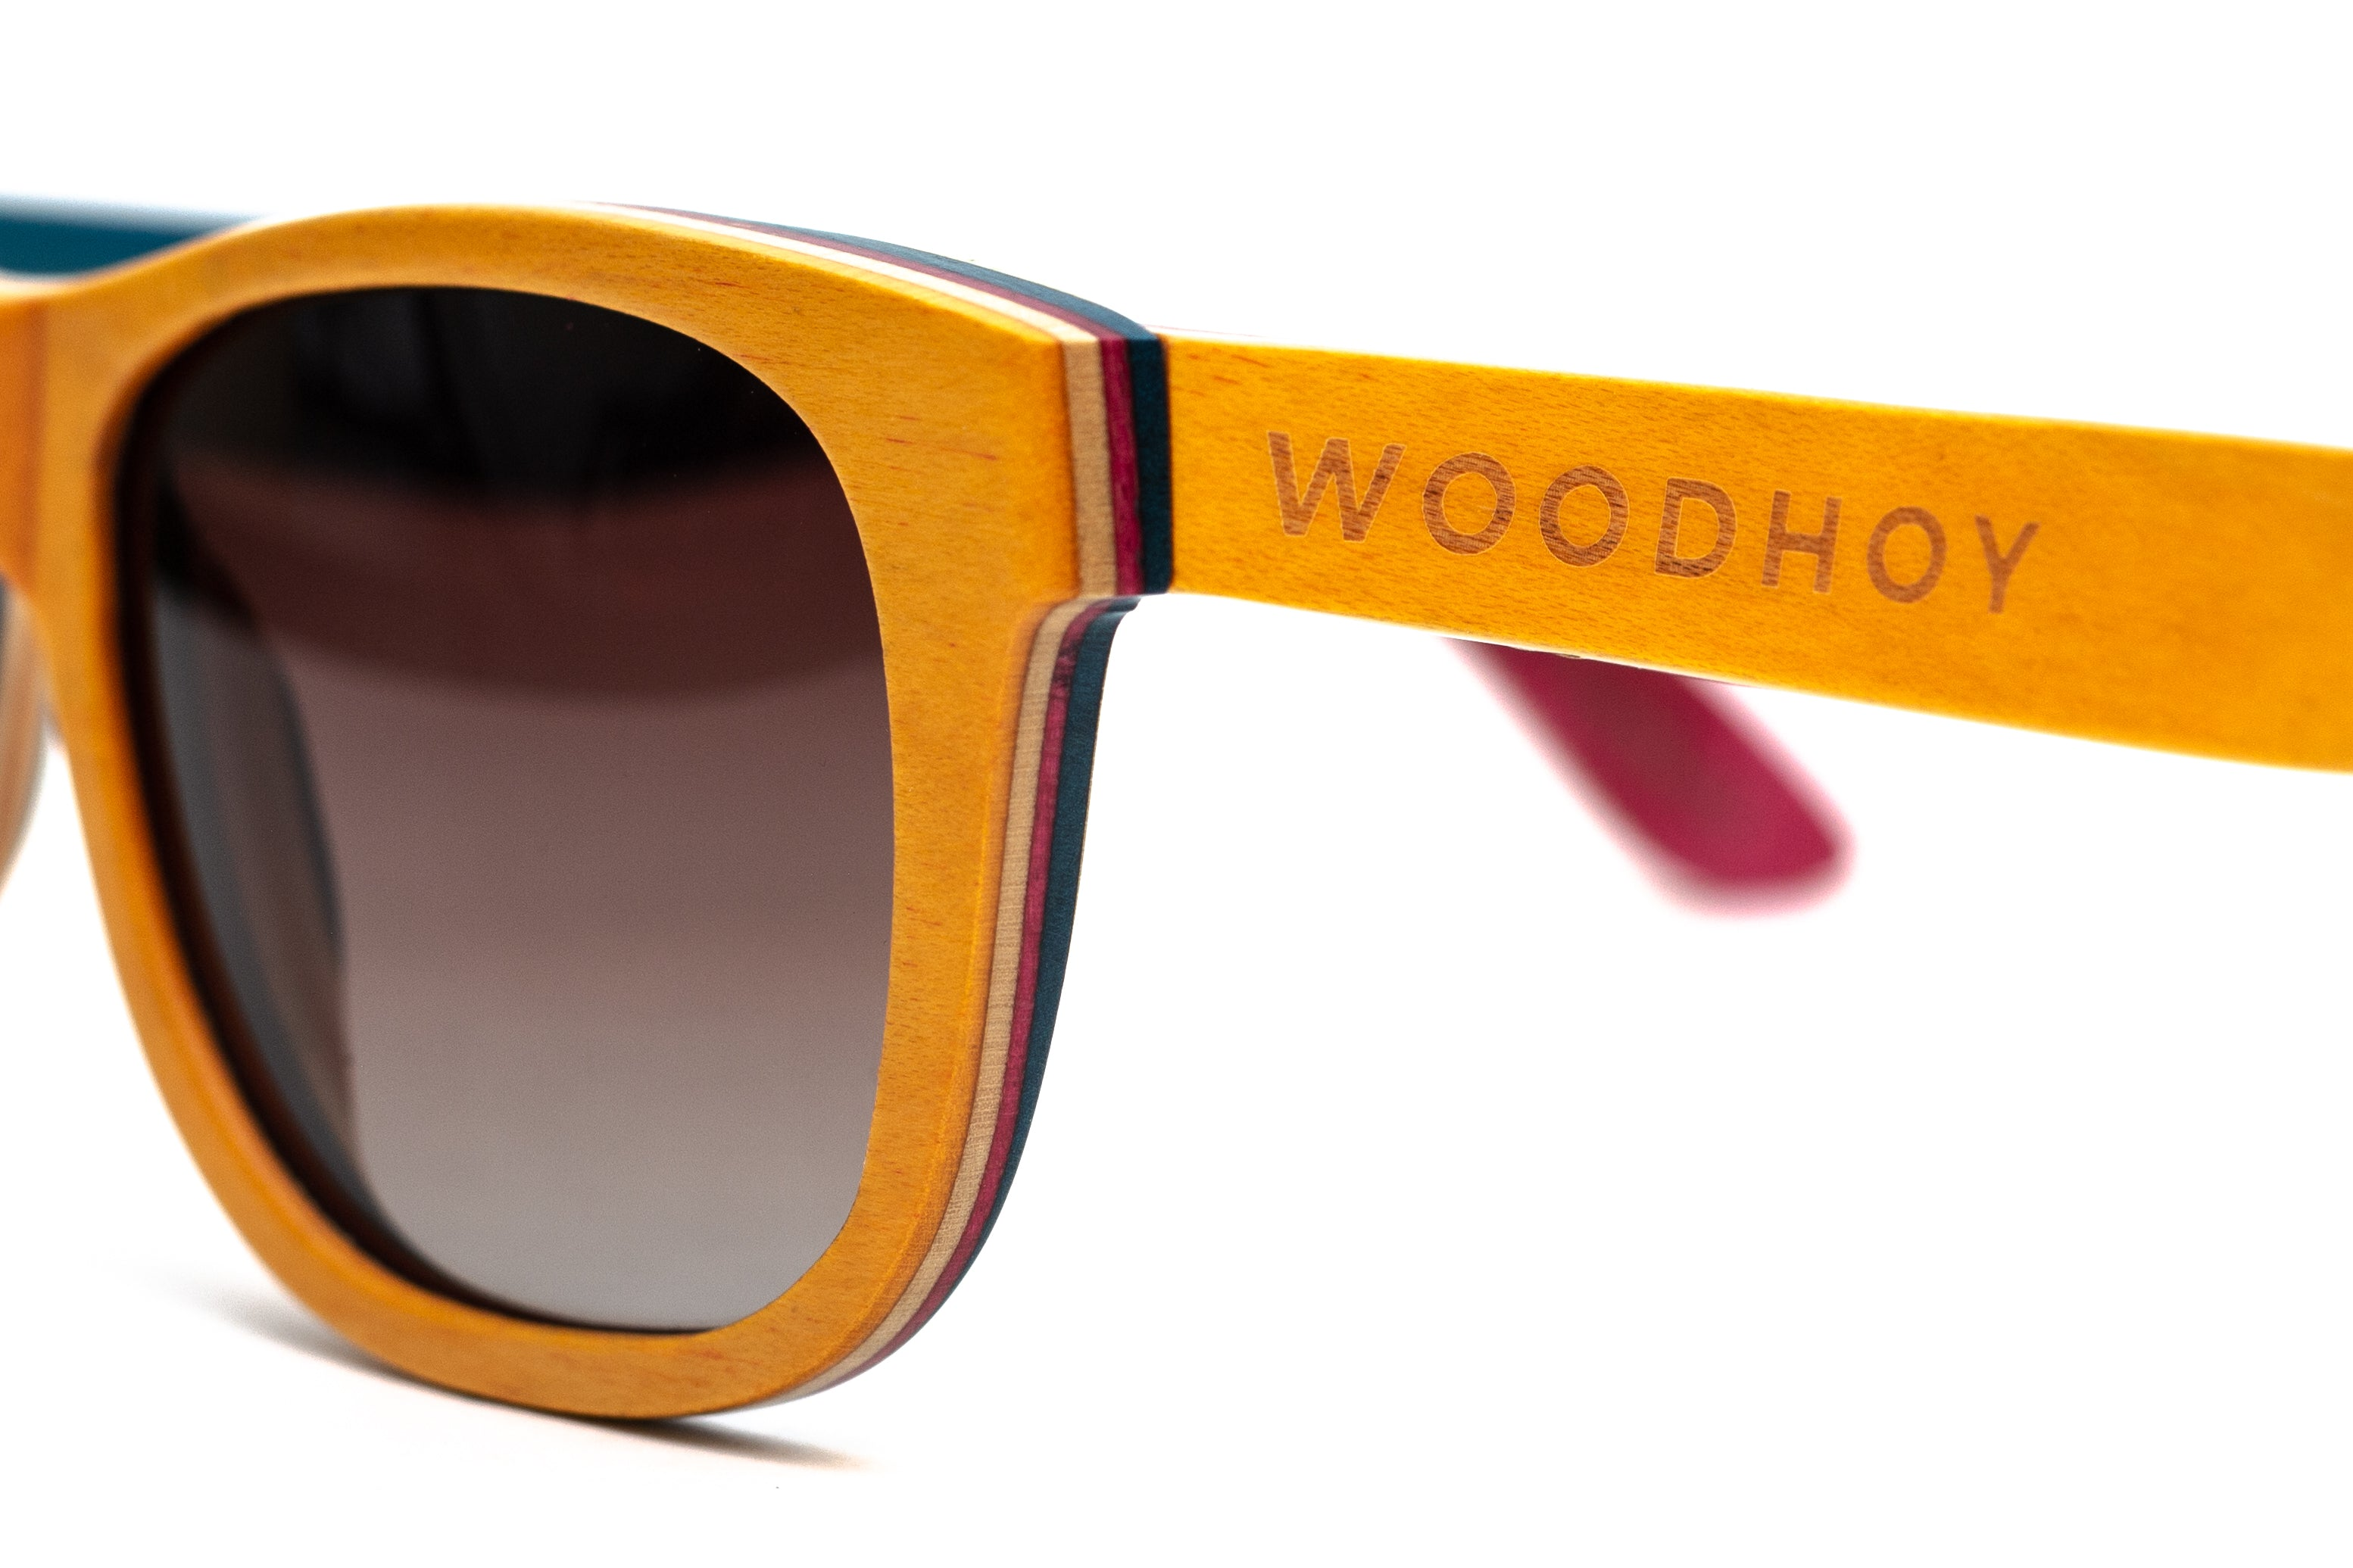 wooden sunglasses woodhoy carezza